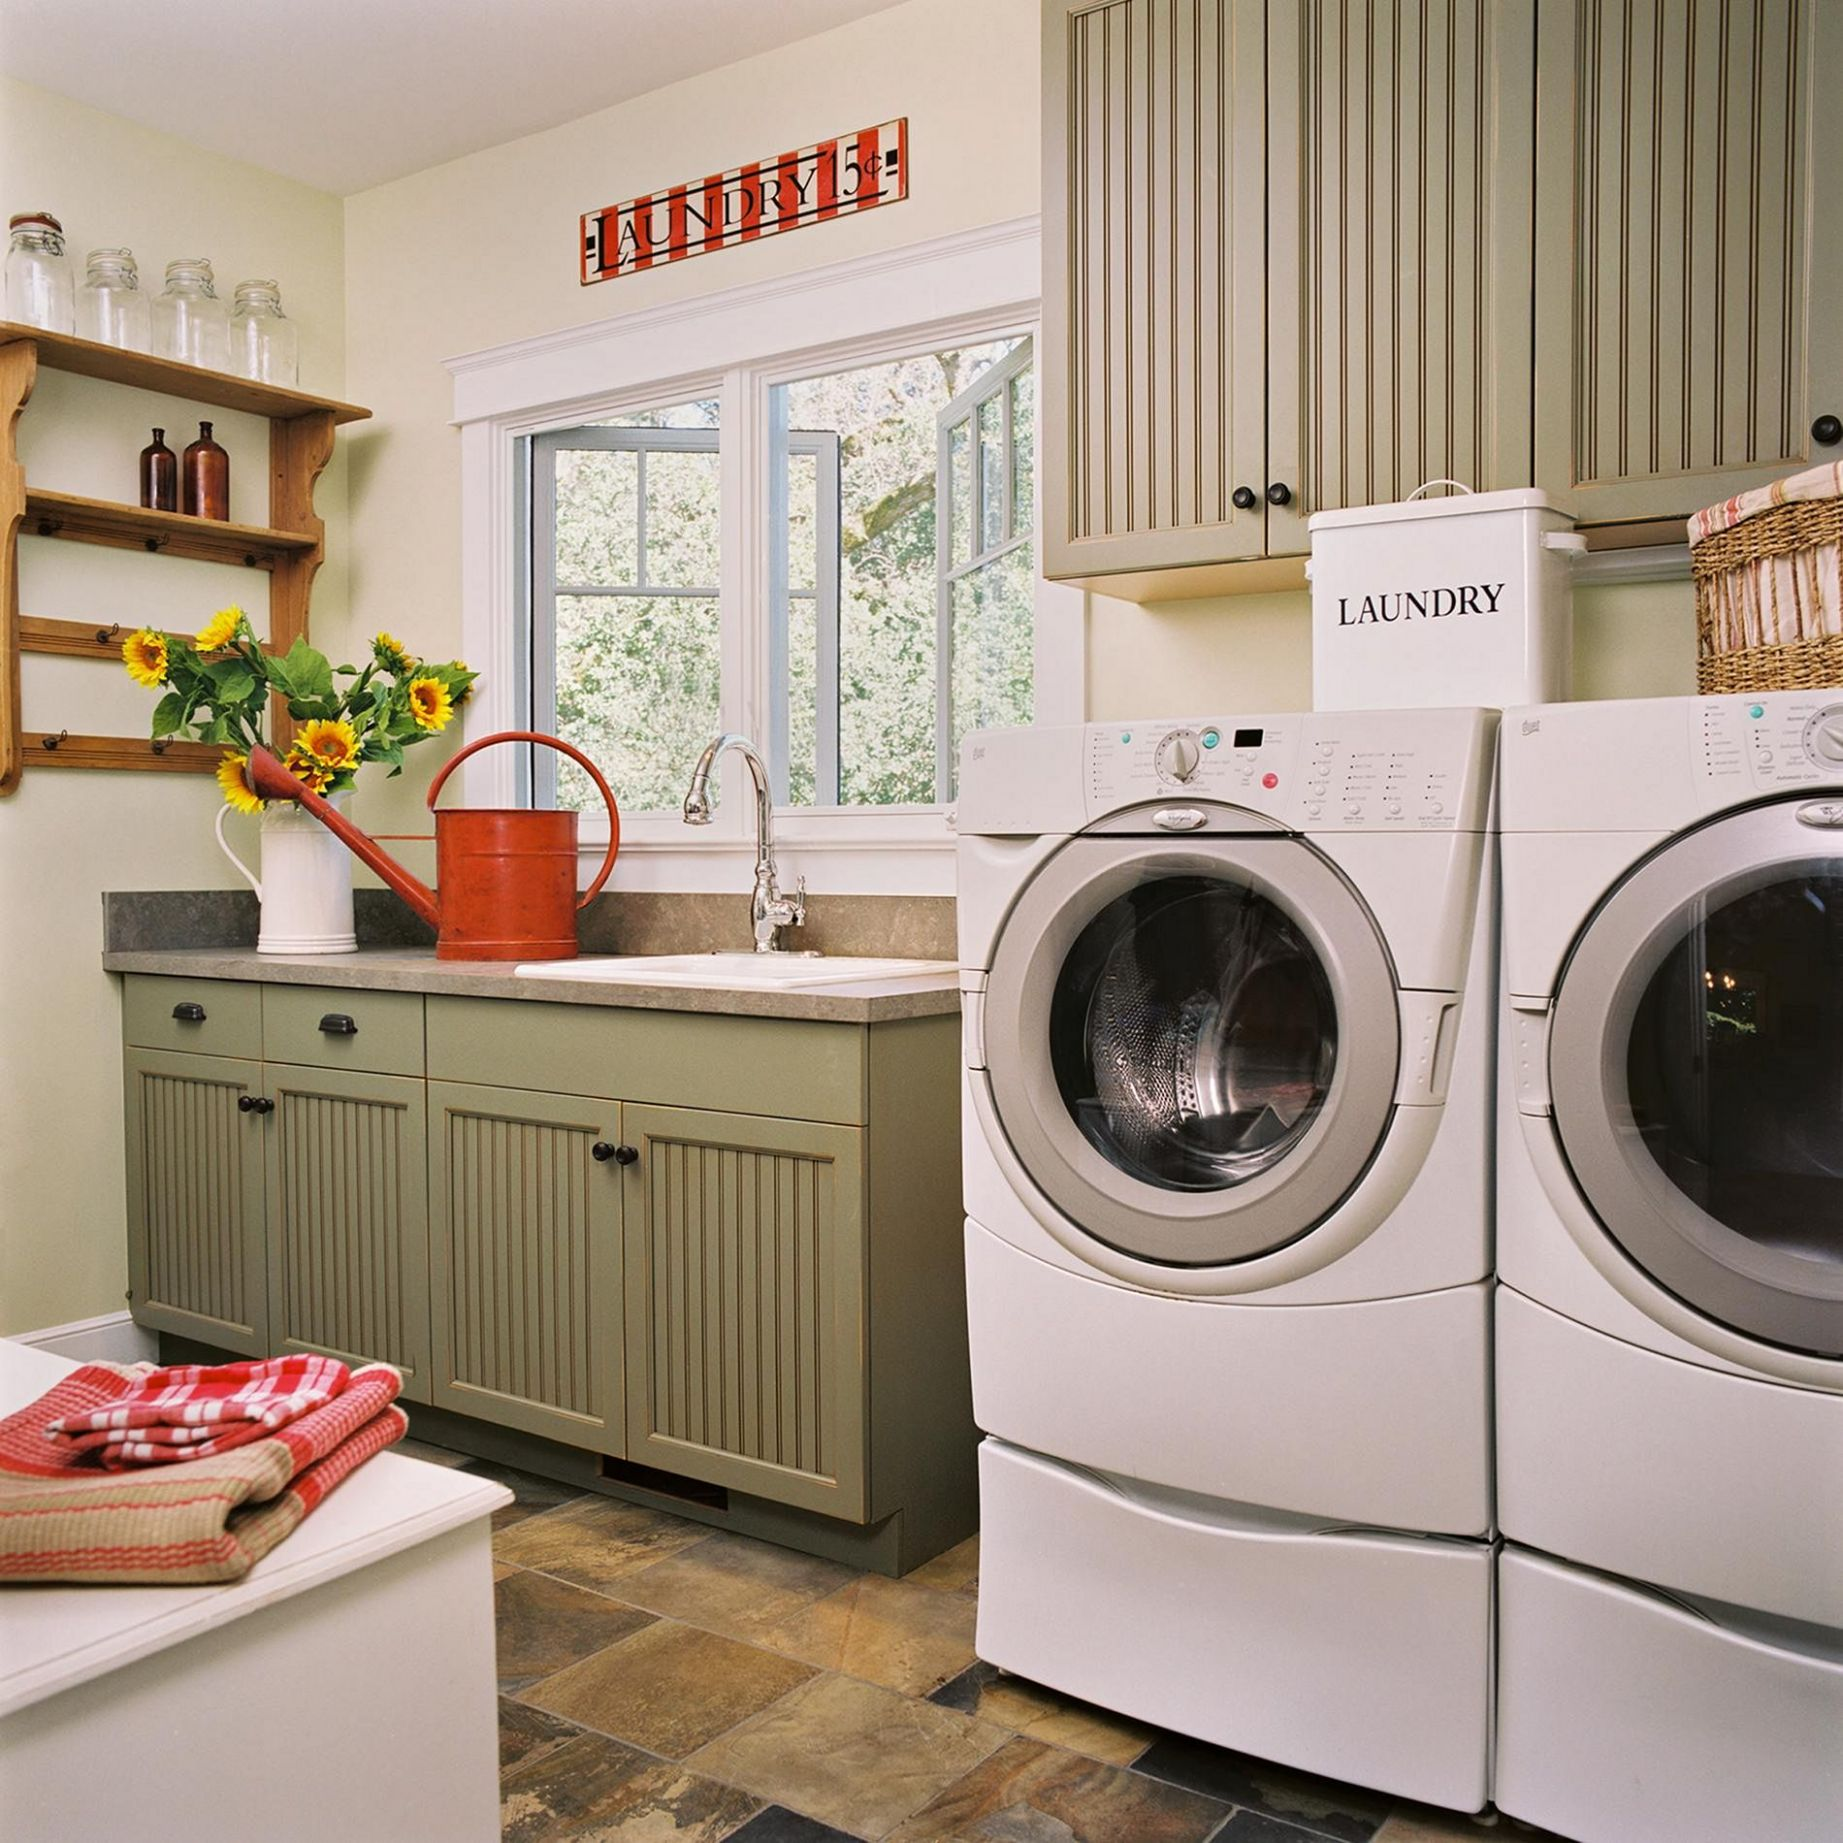 8 Best Small Laundry Room Decoration Ideas You Must Try - - elegant laundry room ideas